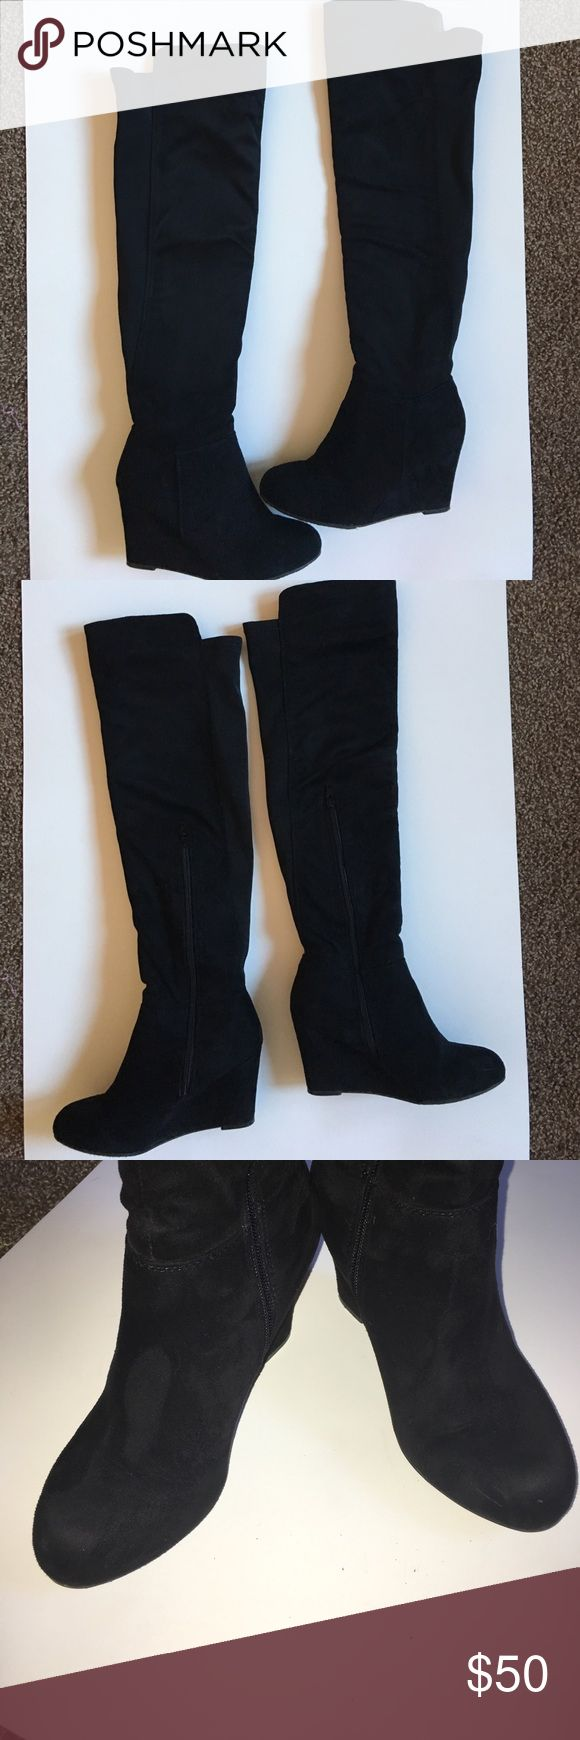 "Over the knee black suede boots w/ original box Worn twice. Too big for me. I'm normally a 5, purchased a 6 by mistake.Shaft measures approximately 21.75"" from arch Heel measures approximately 2.75"" Boot opening measures approximately 16"" around Over the knee slouchy suede wedge boots Chinese Laundry Shoes Over the Knee Boots"